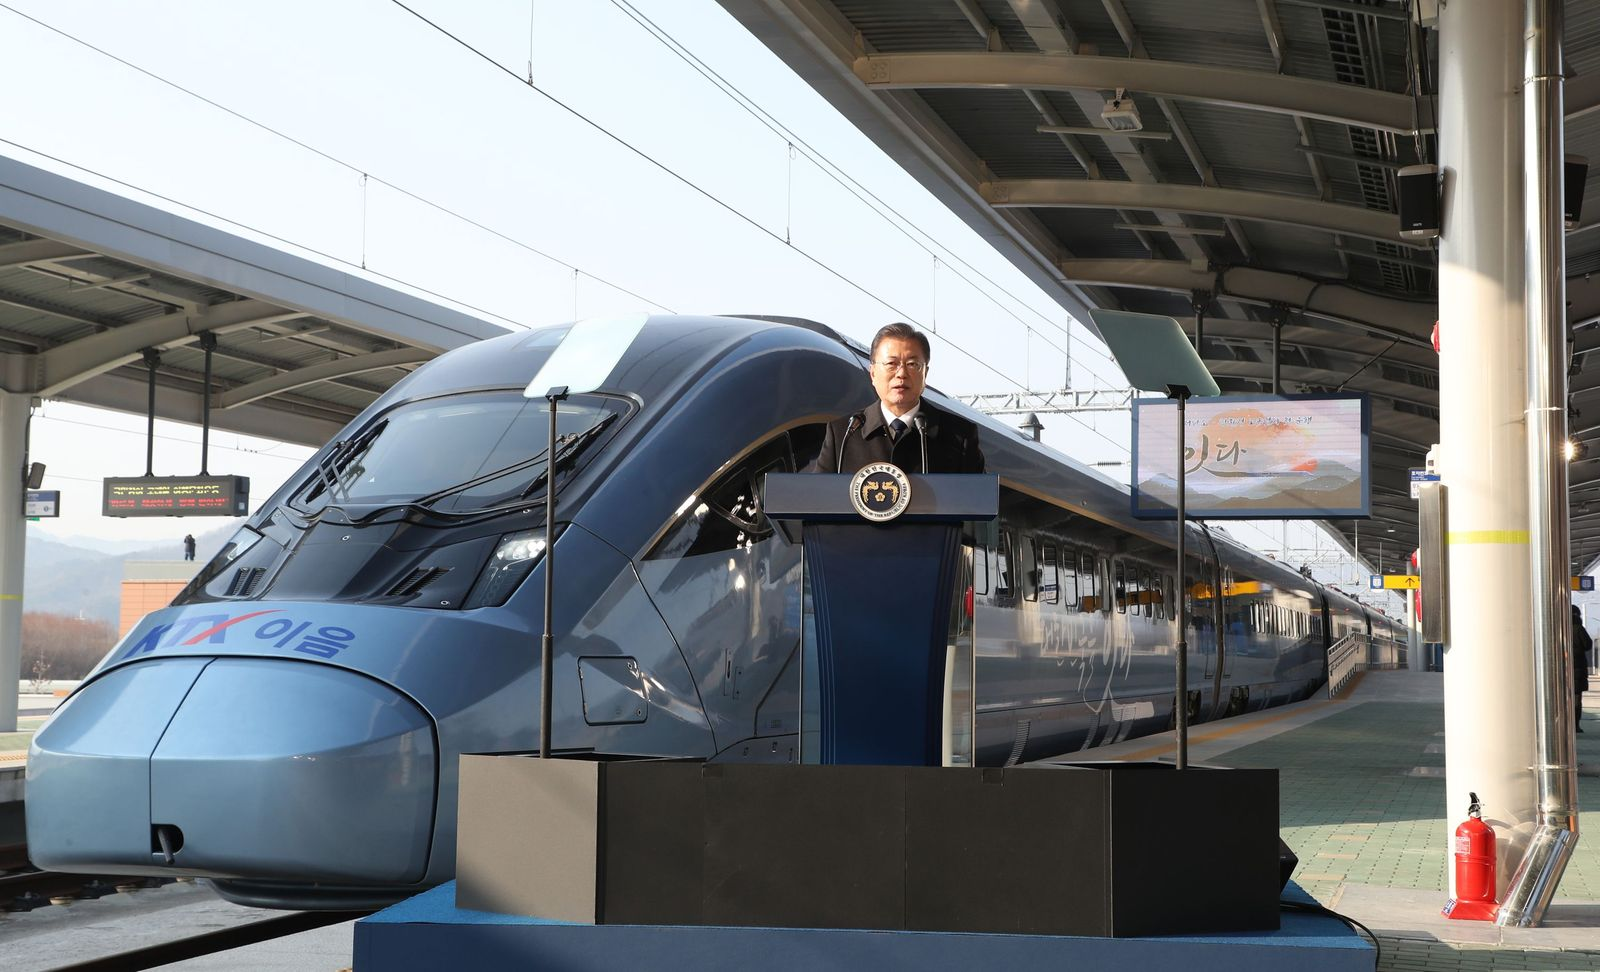 South Korean president rides brand-new low-carbon bullet train, Wonju, Korea - 04 Jan 2021